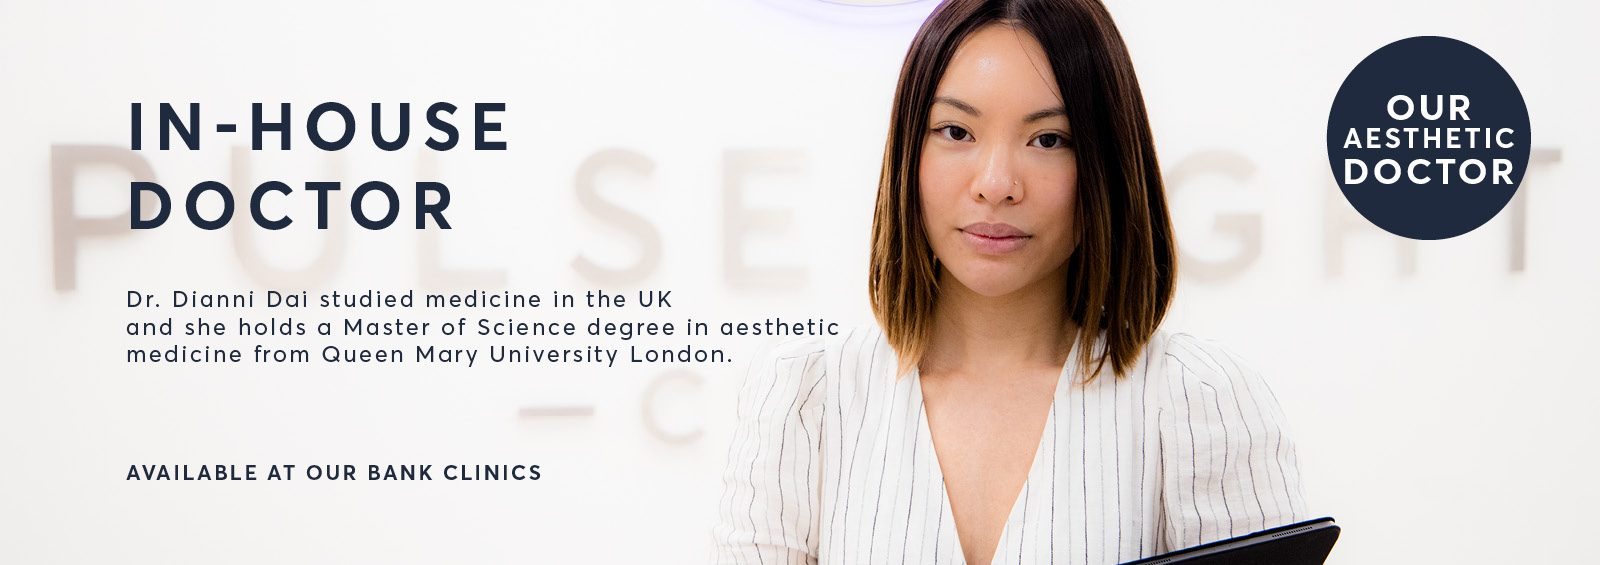 Doctor Dianni Dai an expert in injectable treatments